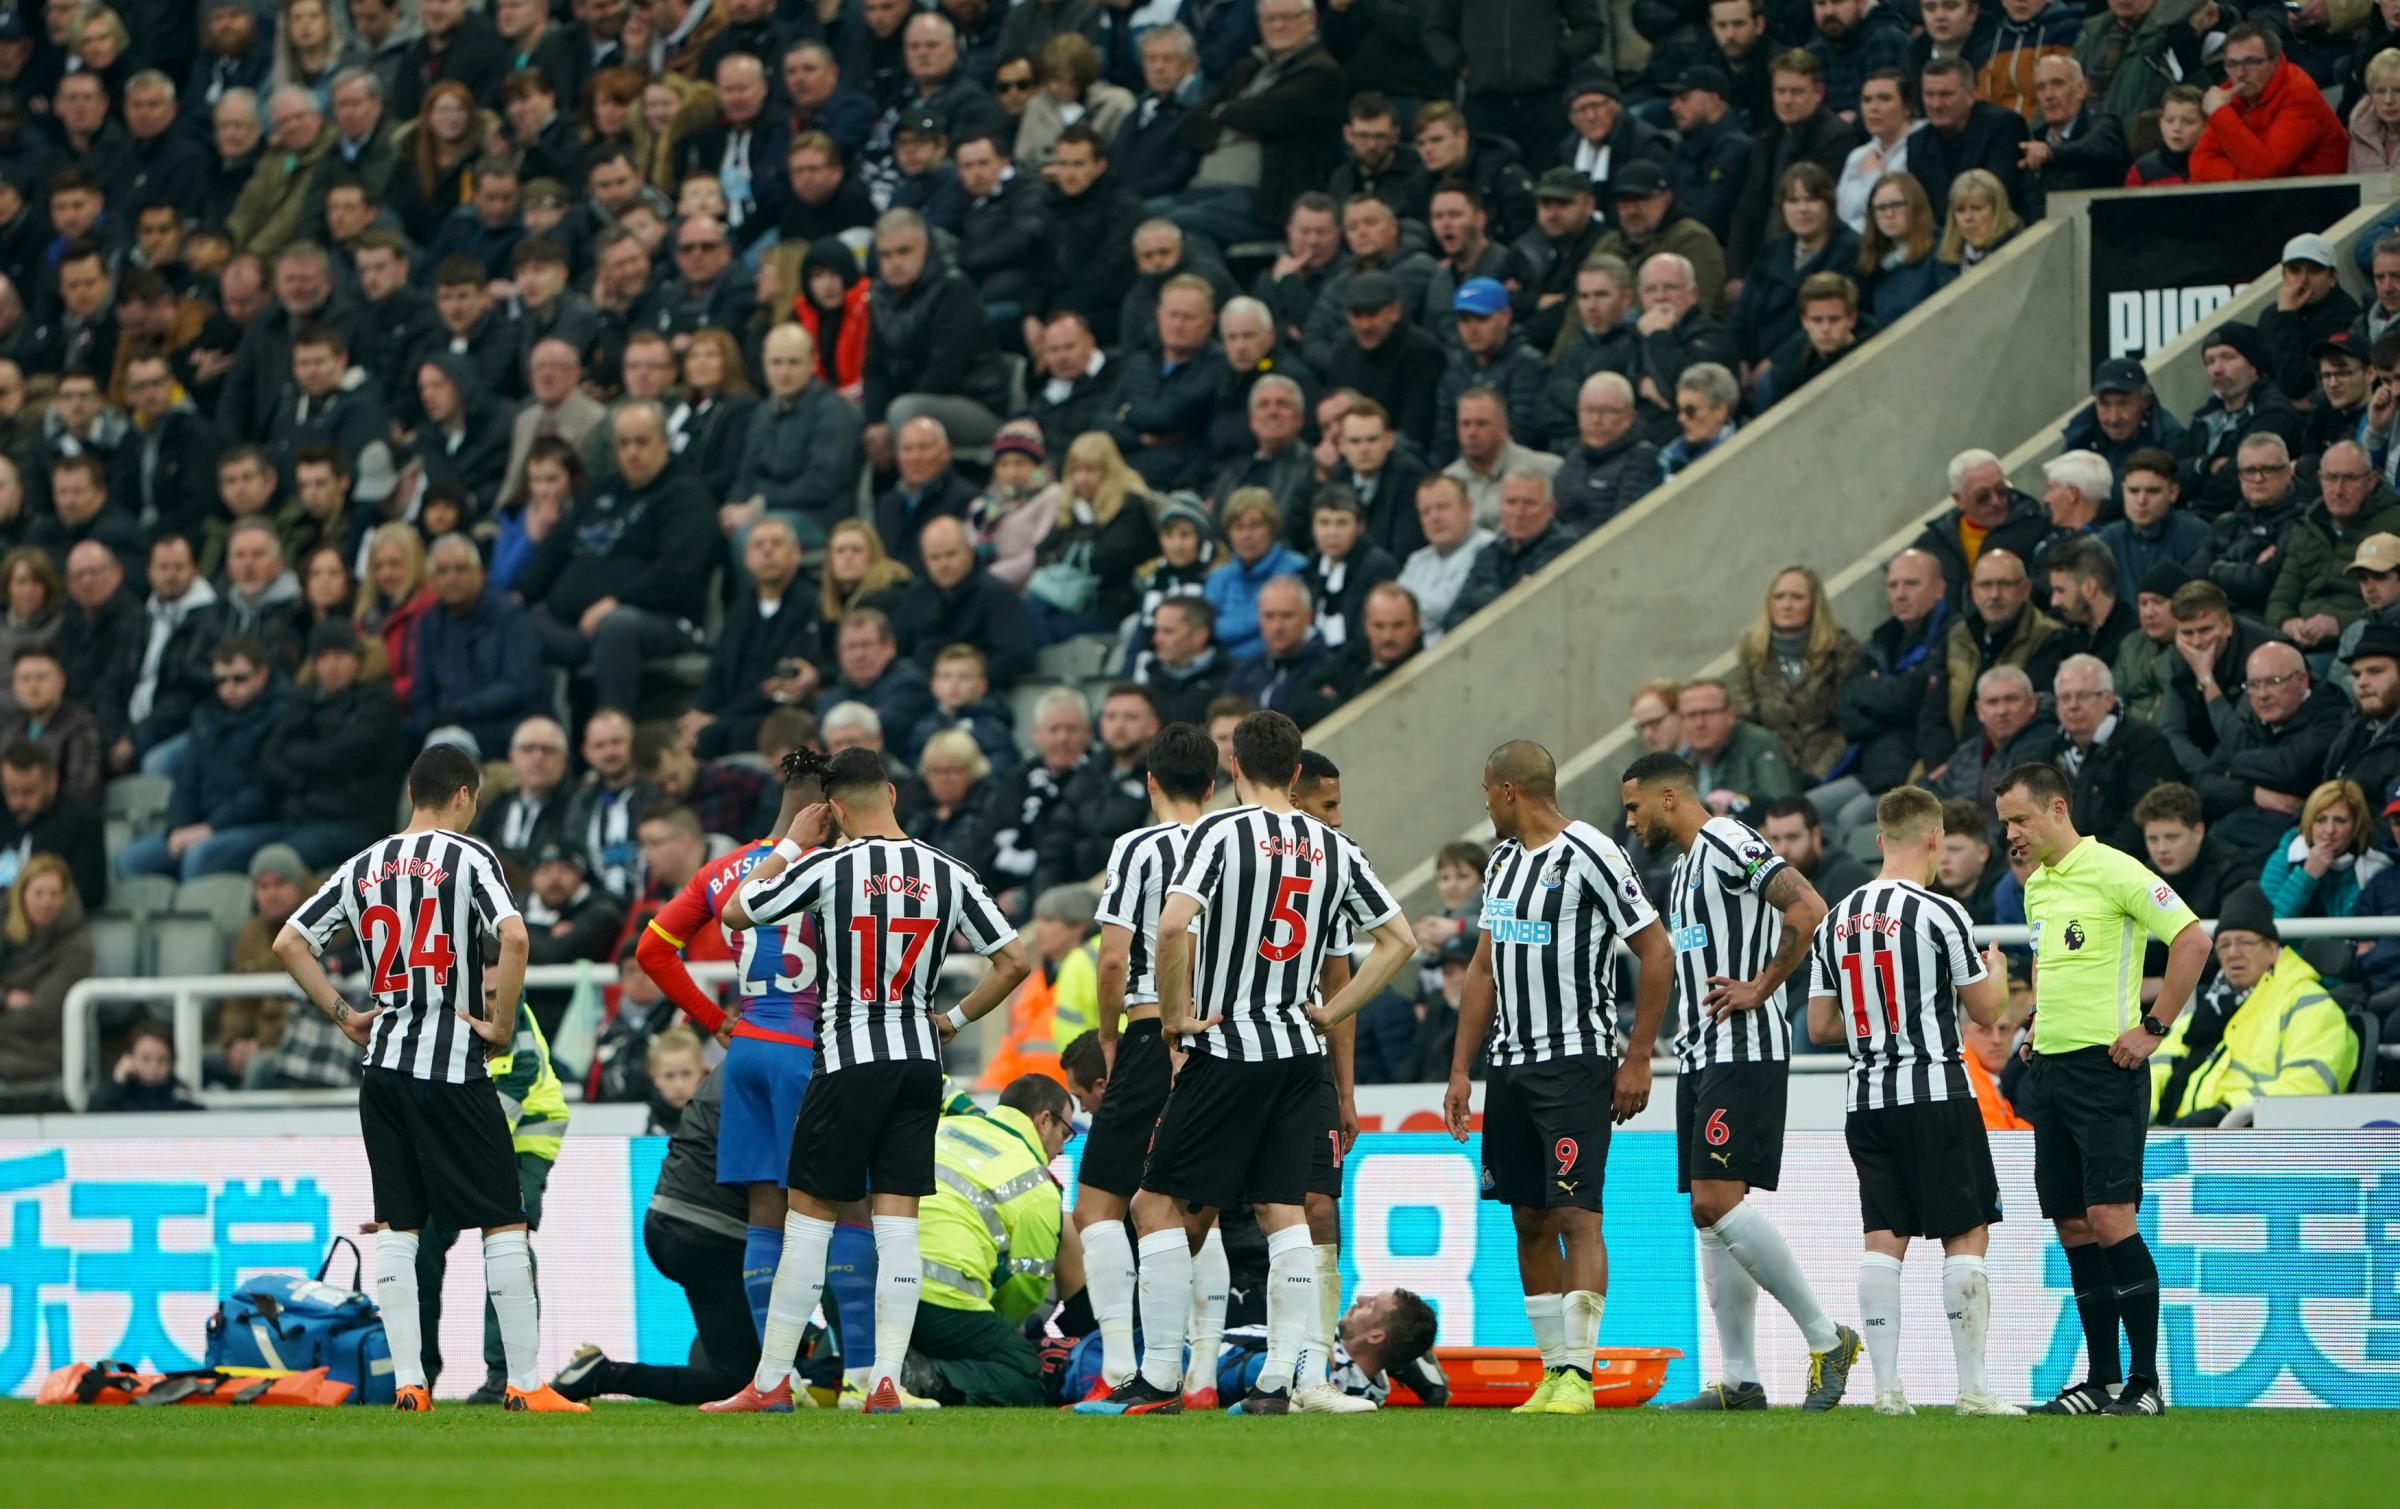 Newcastle United's Florian Lejeune leaves the pitch injured. Picture: PA